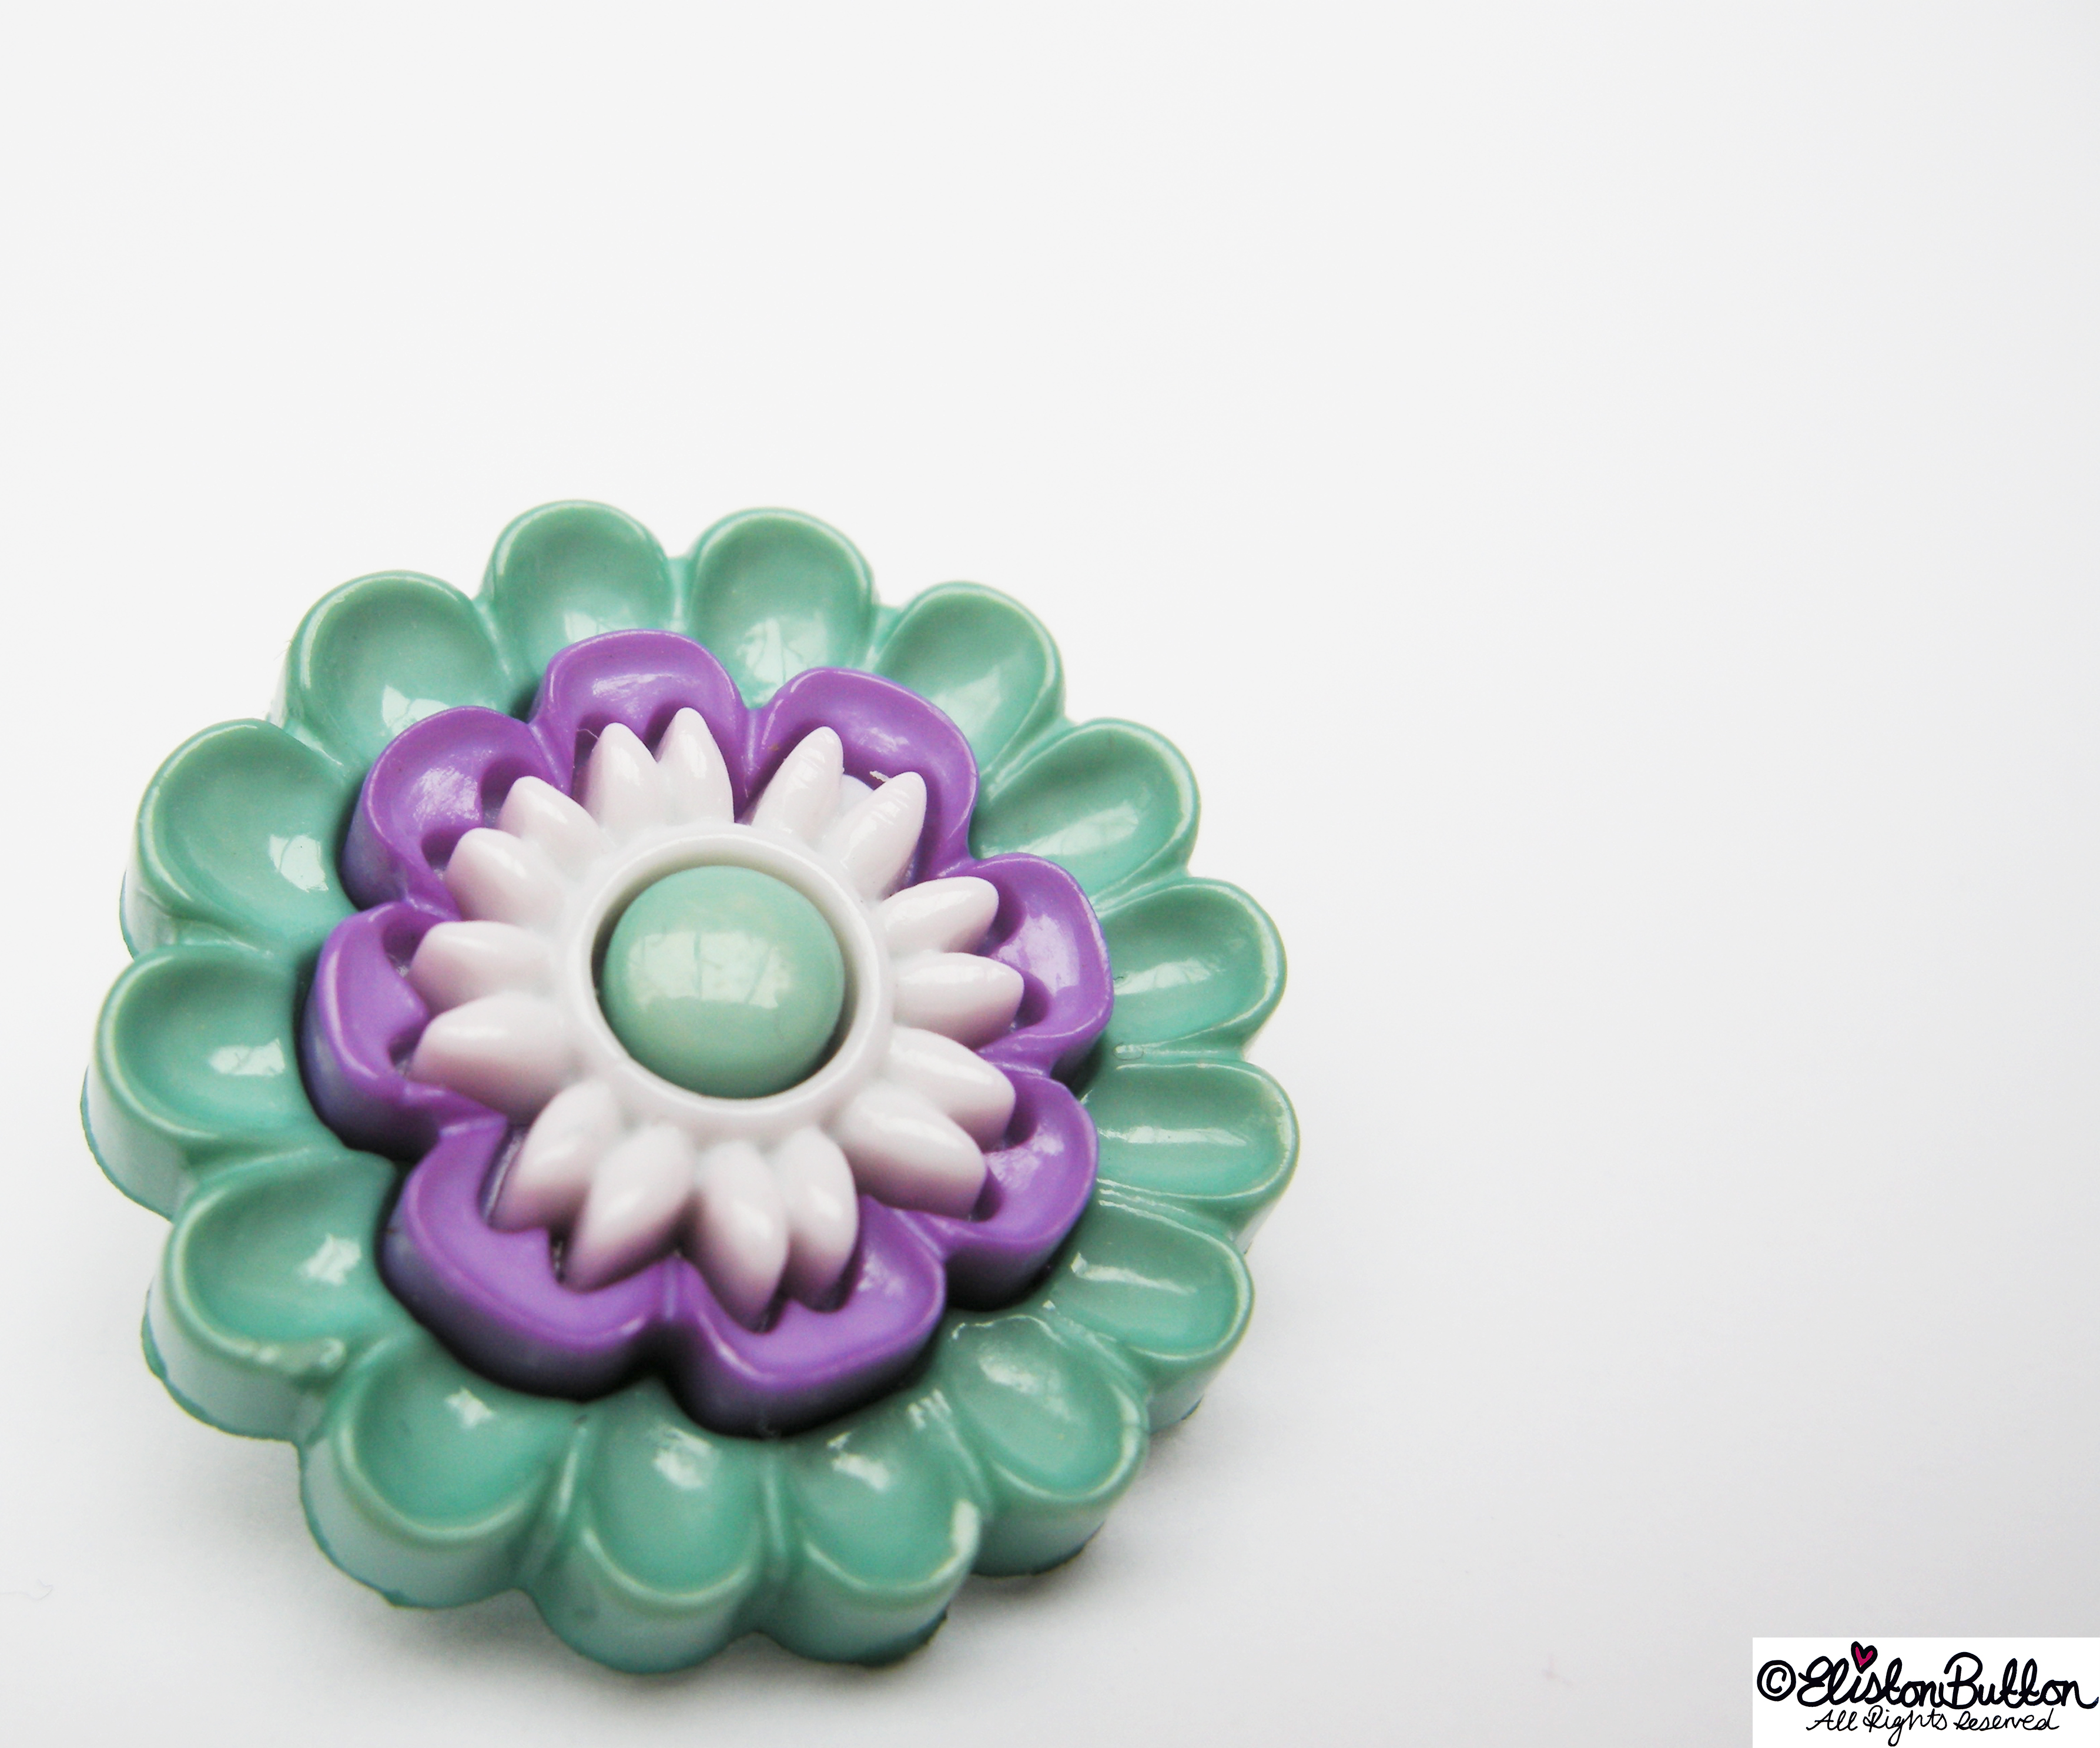 Turquoise, Purple and White Flower Button Centrepiece - 27 Before 27 – Aquamarine at www.elistonbutton.com - Eliston Button - That Crafty Kid – Art, Design, Craft & Adventure.